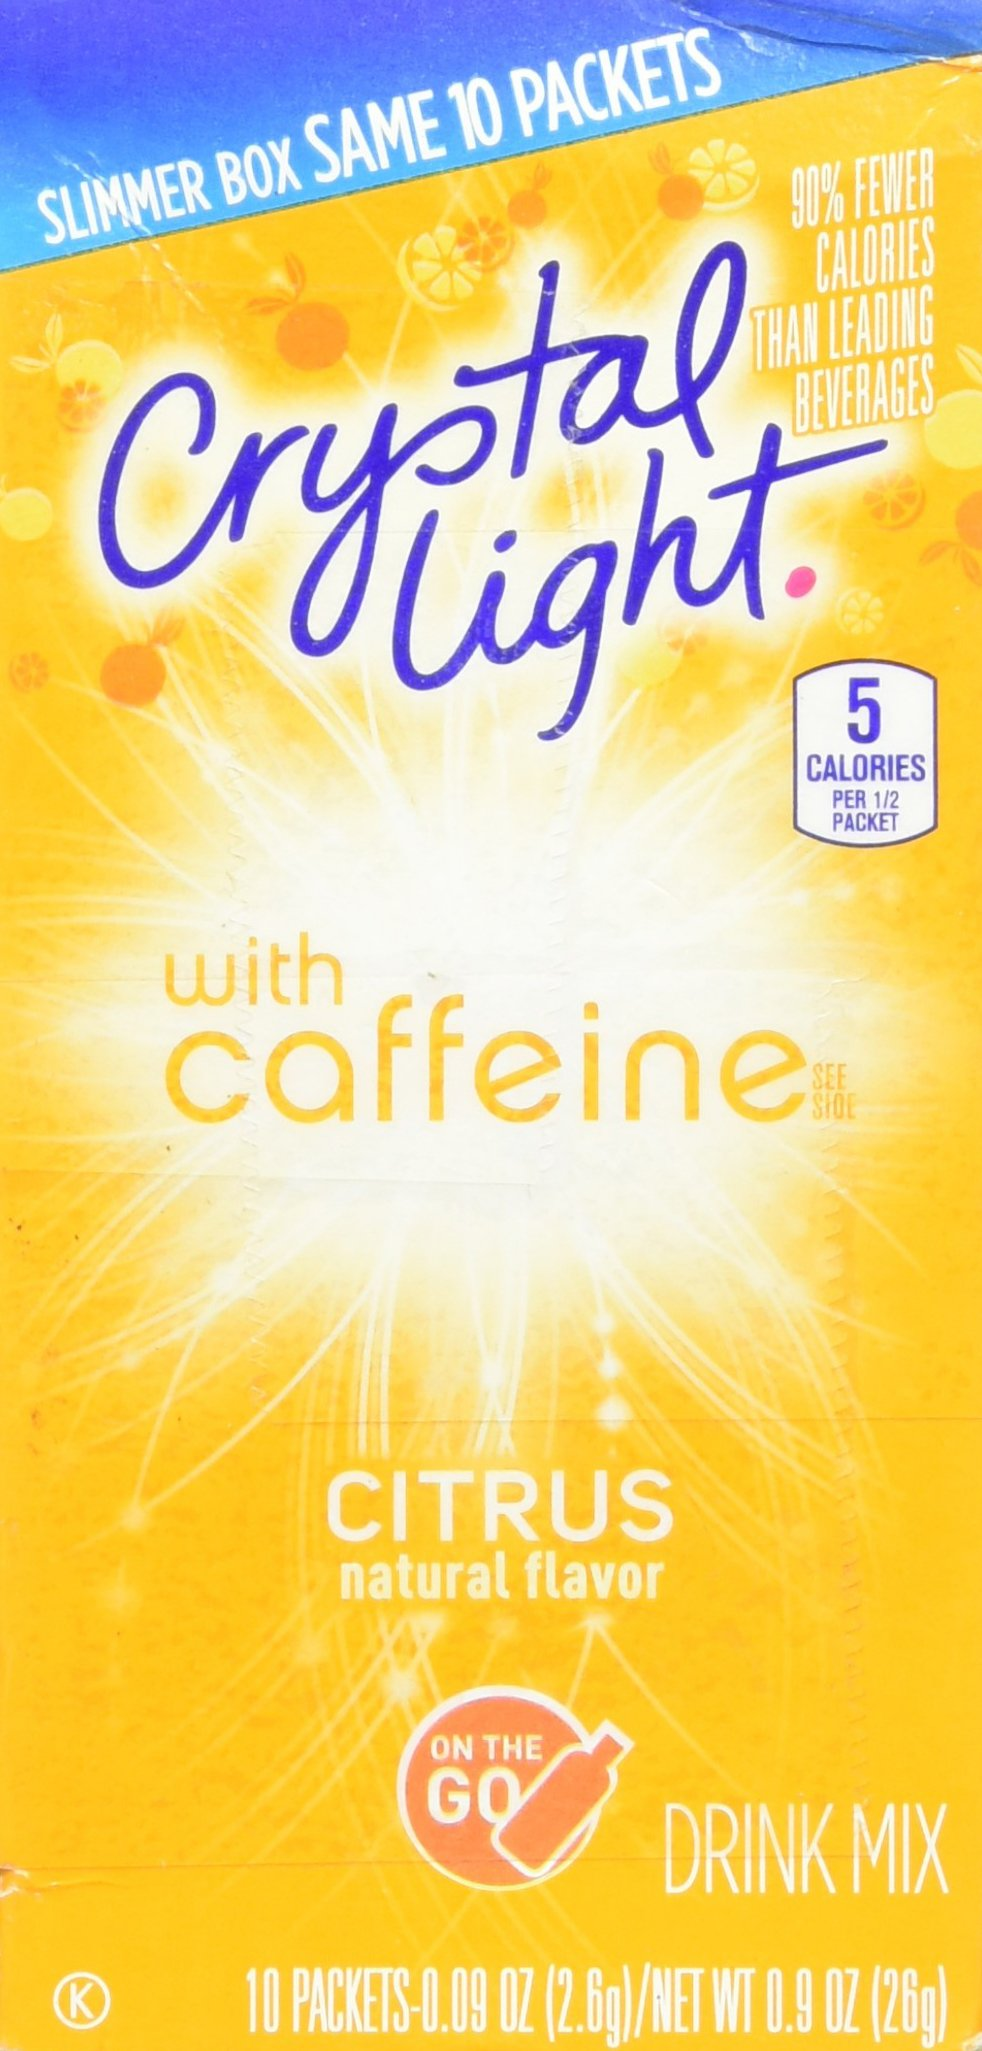 Crystal Light On The Go Citrus Caffeine, 10 Packets (Pack of 4)